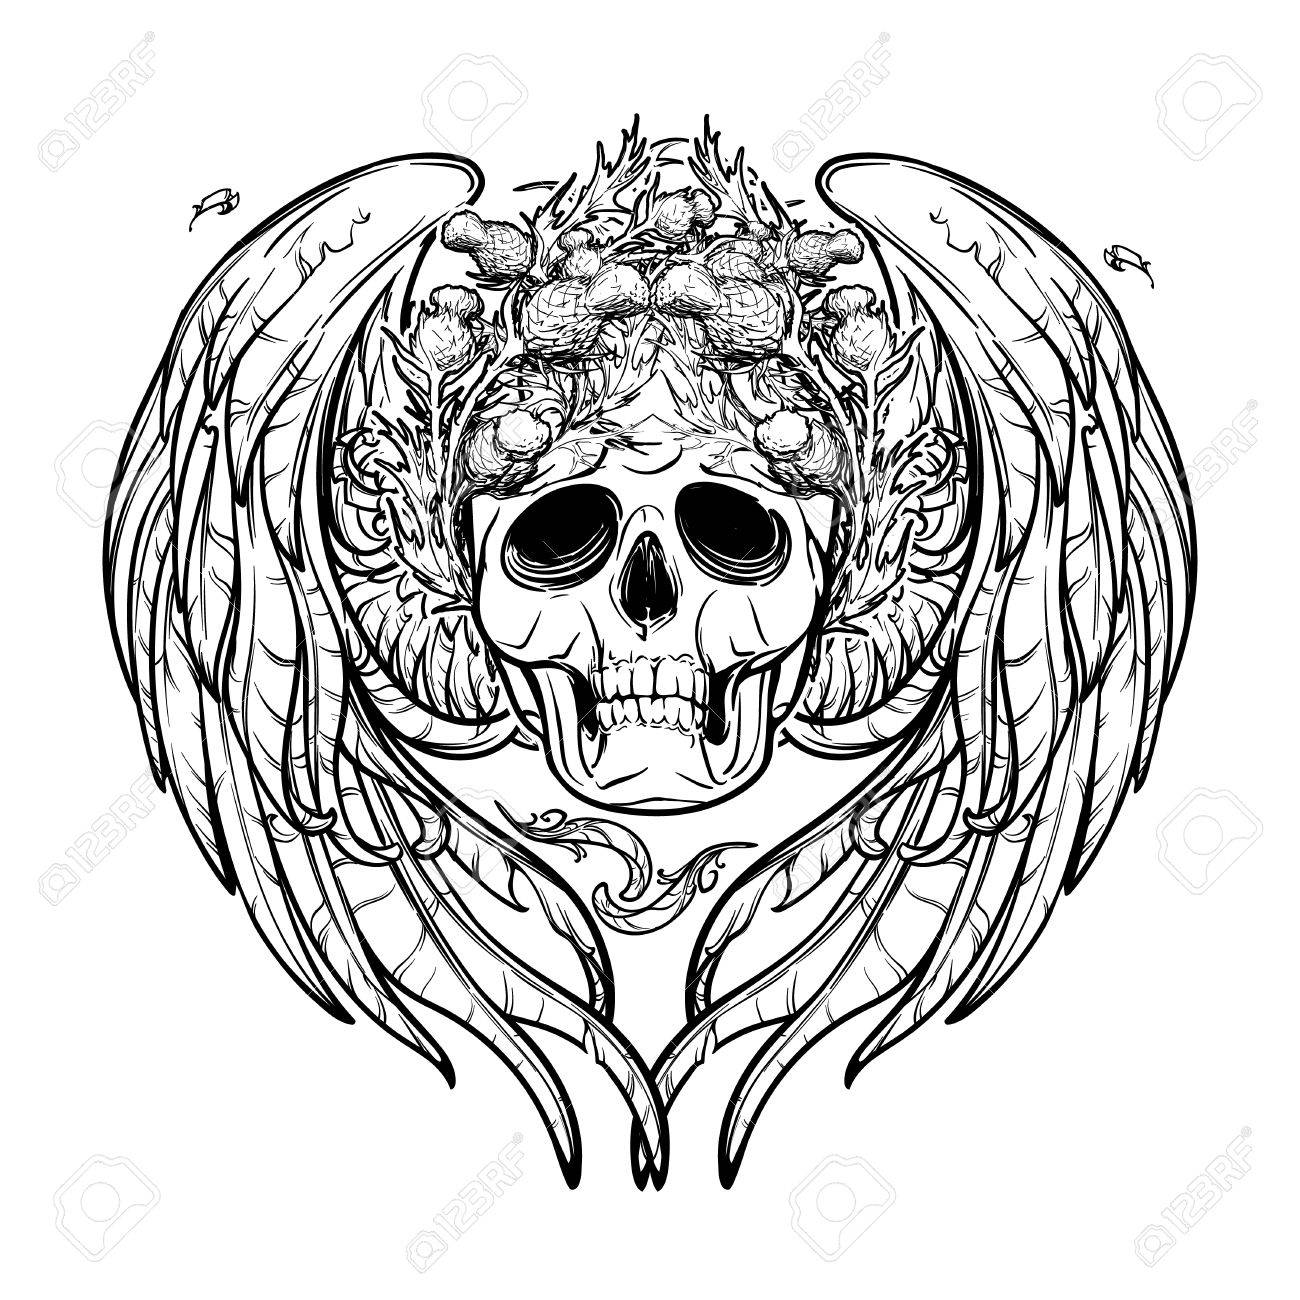 1300x1300 Human Skull In A Wreath Of Thistle With Feathered Wings Behind